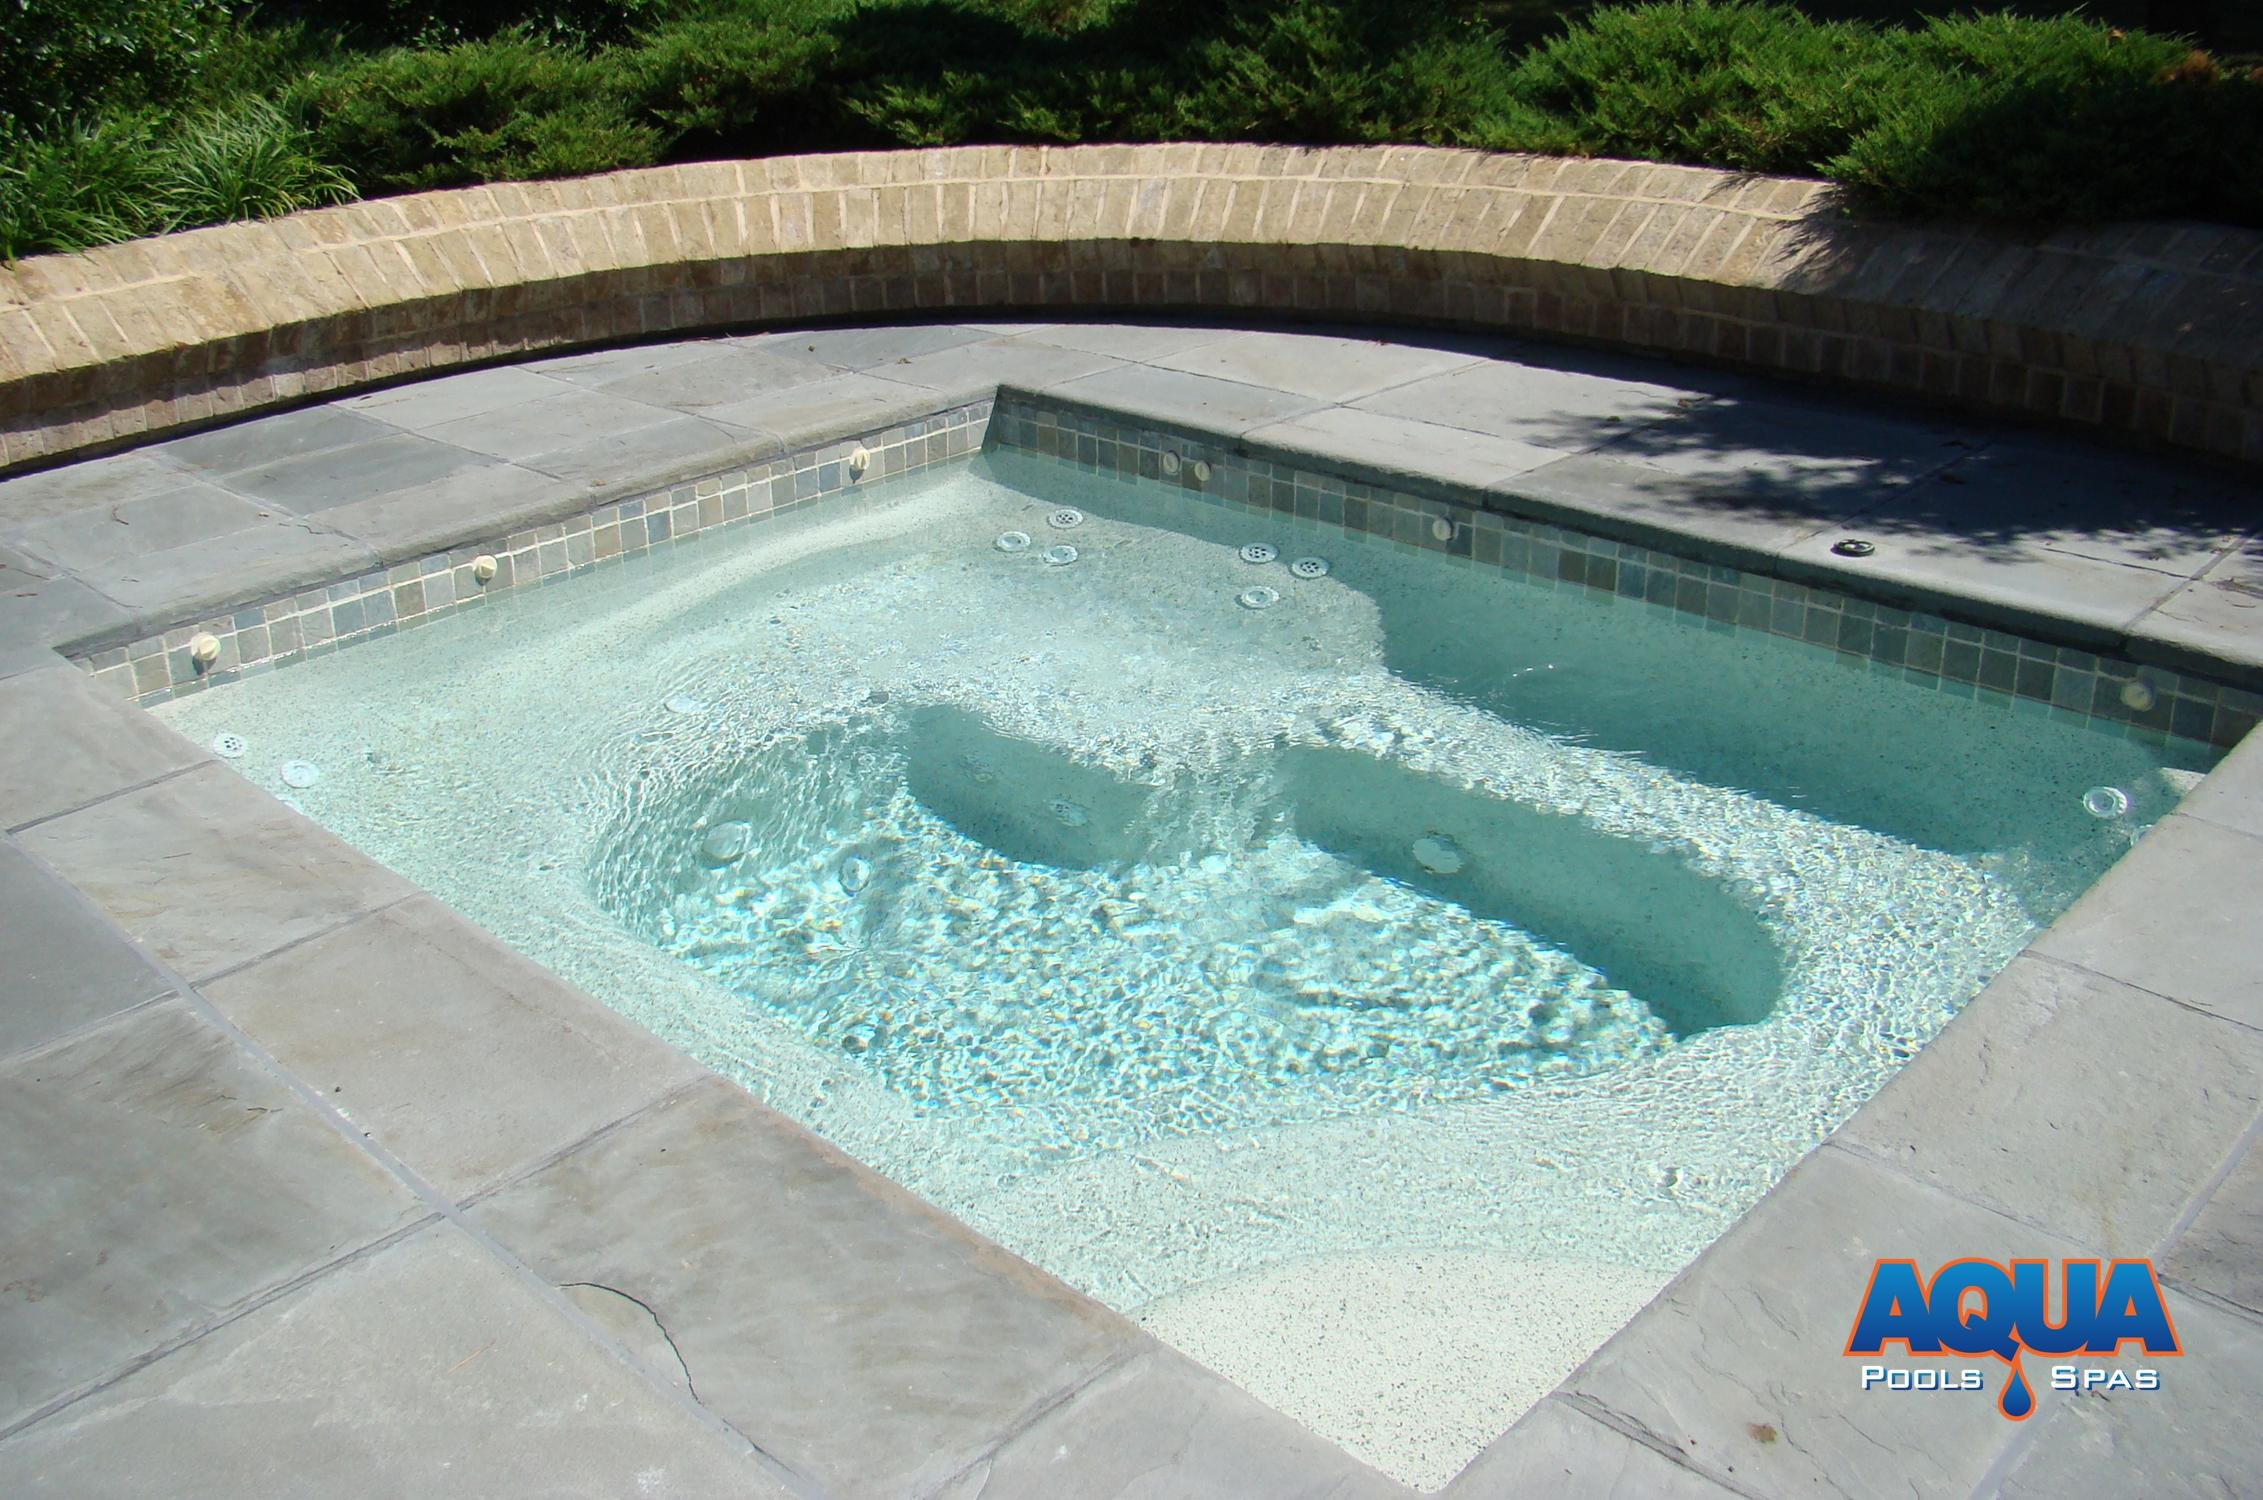 Custom Spas Custom Gunite Hot Tubs AQUA Pools & Spas Easton Maryland